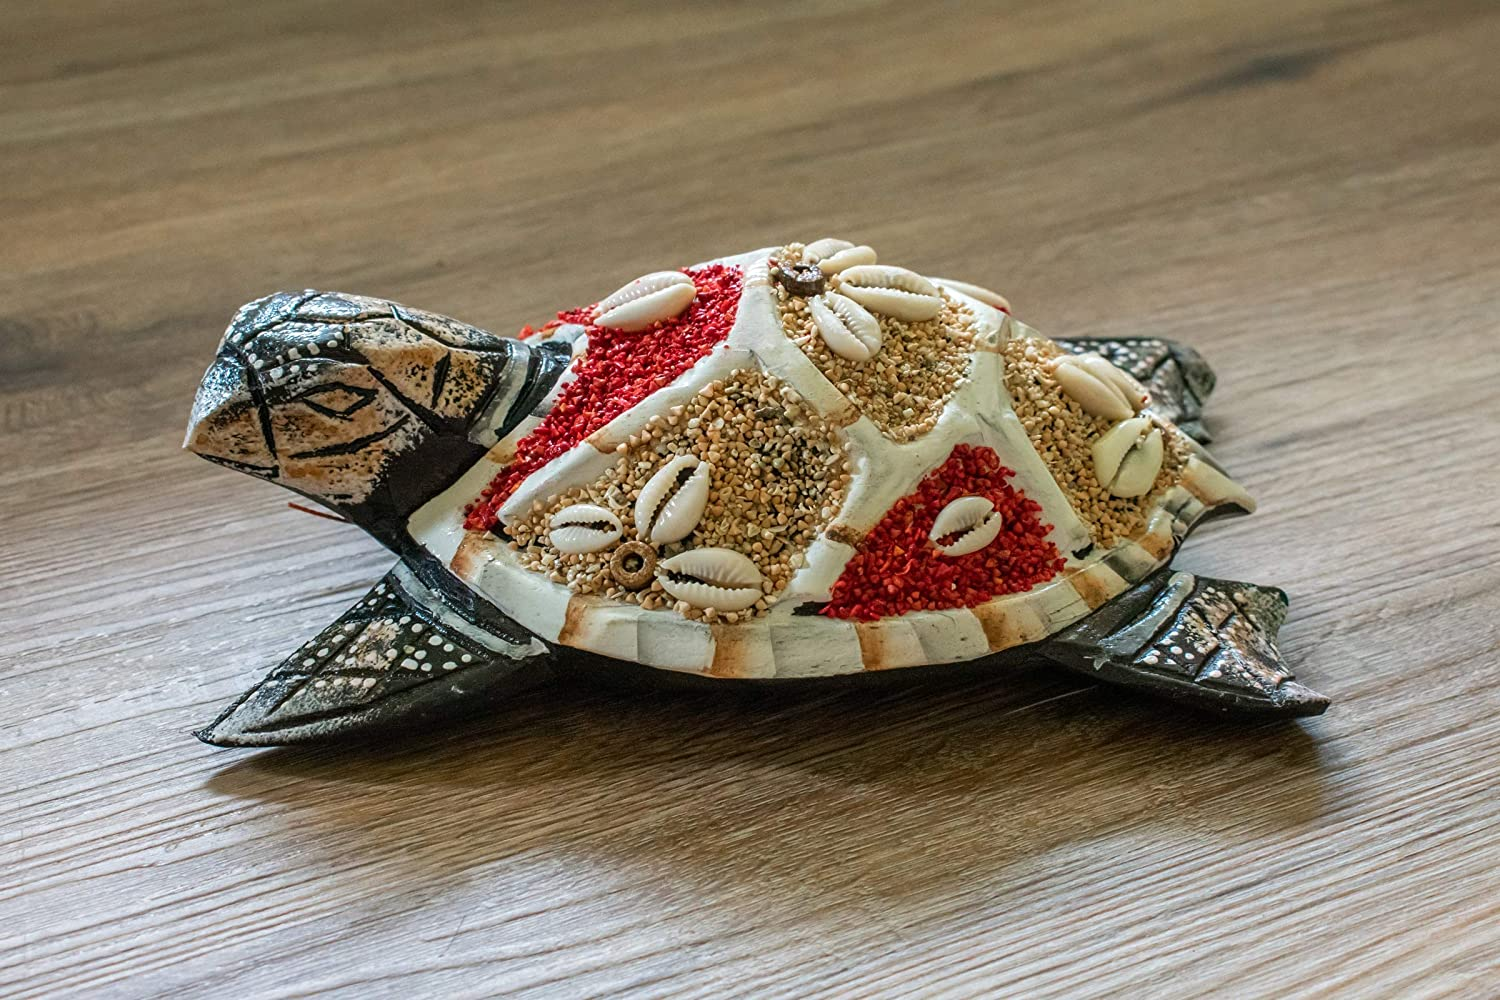 G6 COLLECTION Wooden Tortoise Turtle Home Decor Sculpture Statue Hand Carved Decorative Accent Figurine Handcrafted Handmade Seaside Tropical Nautical Ocean Coastal Decoration Wall Hanging (Red)